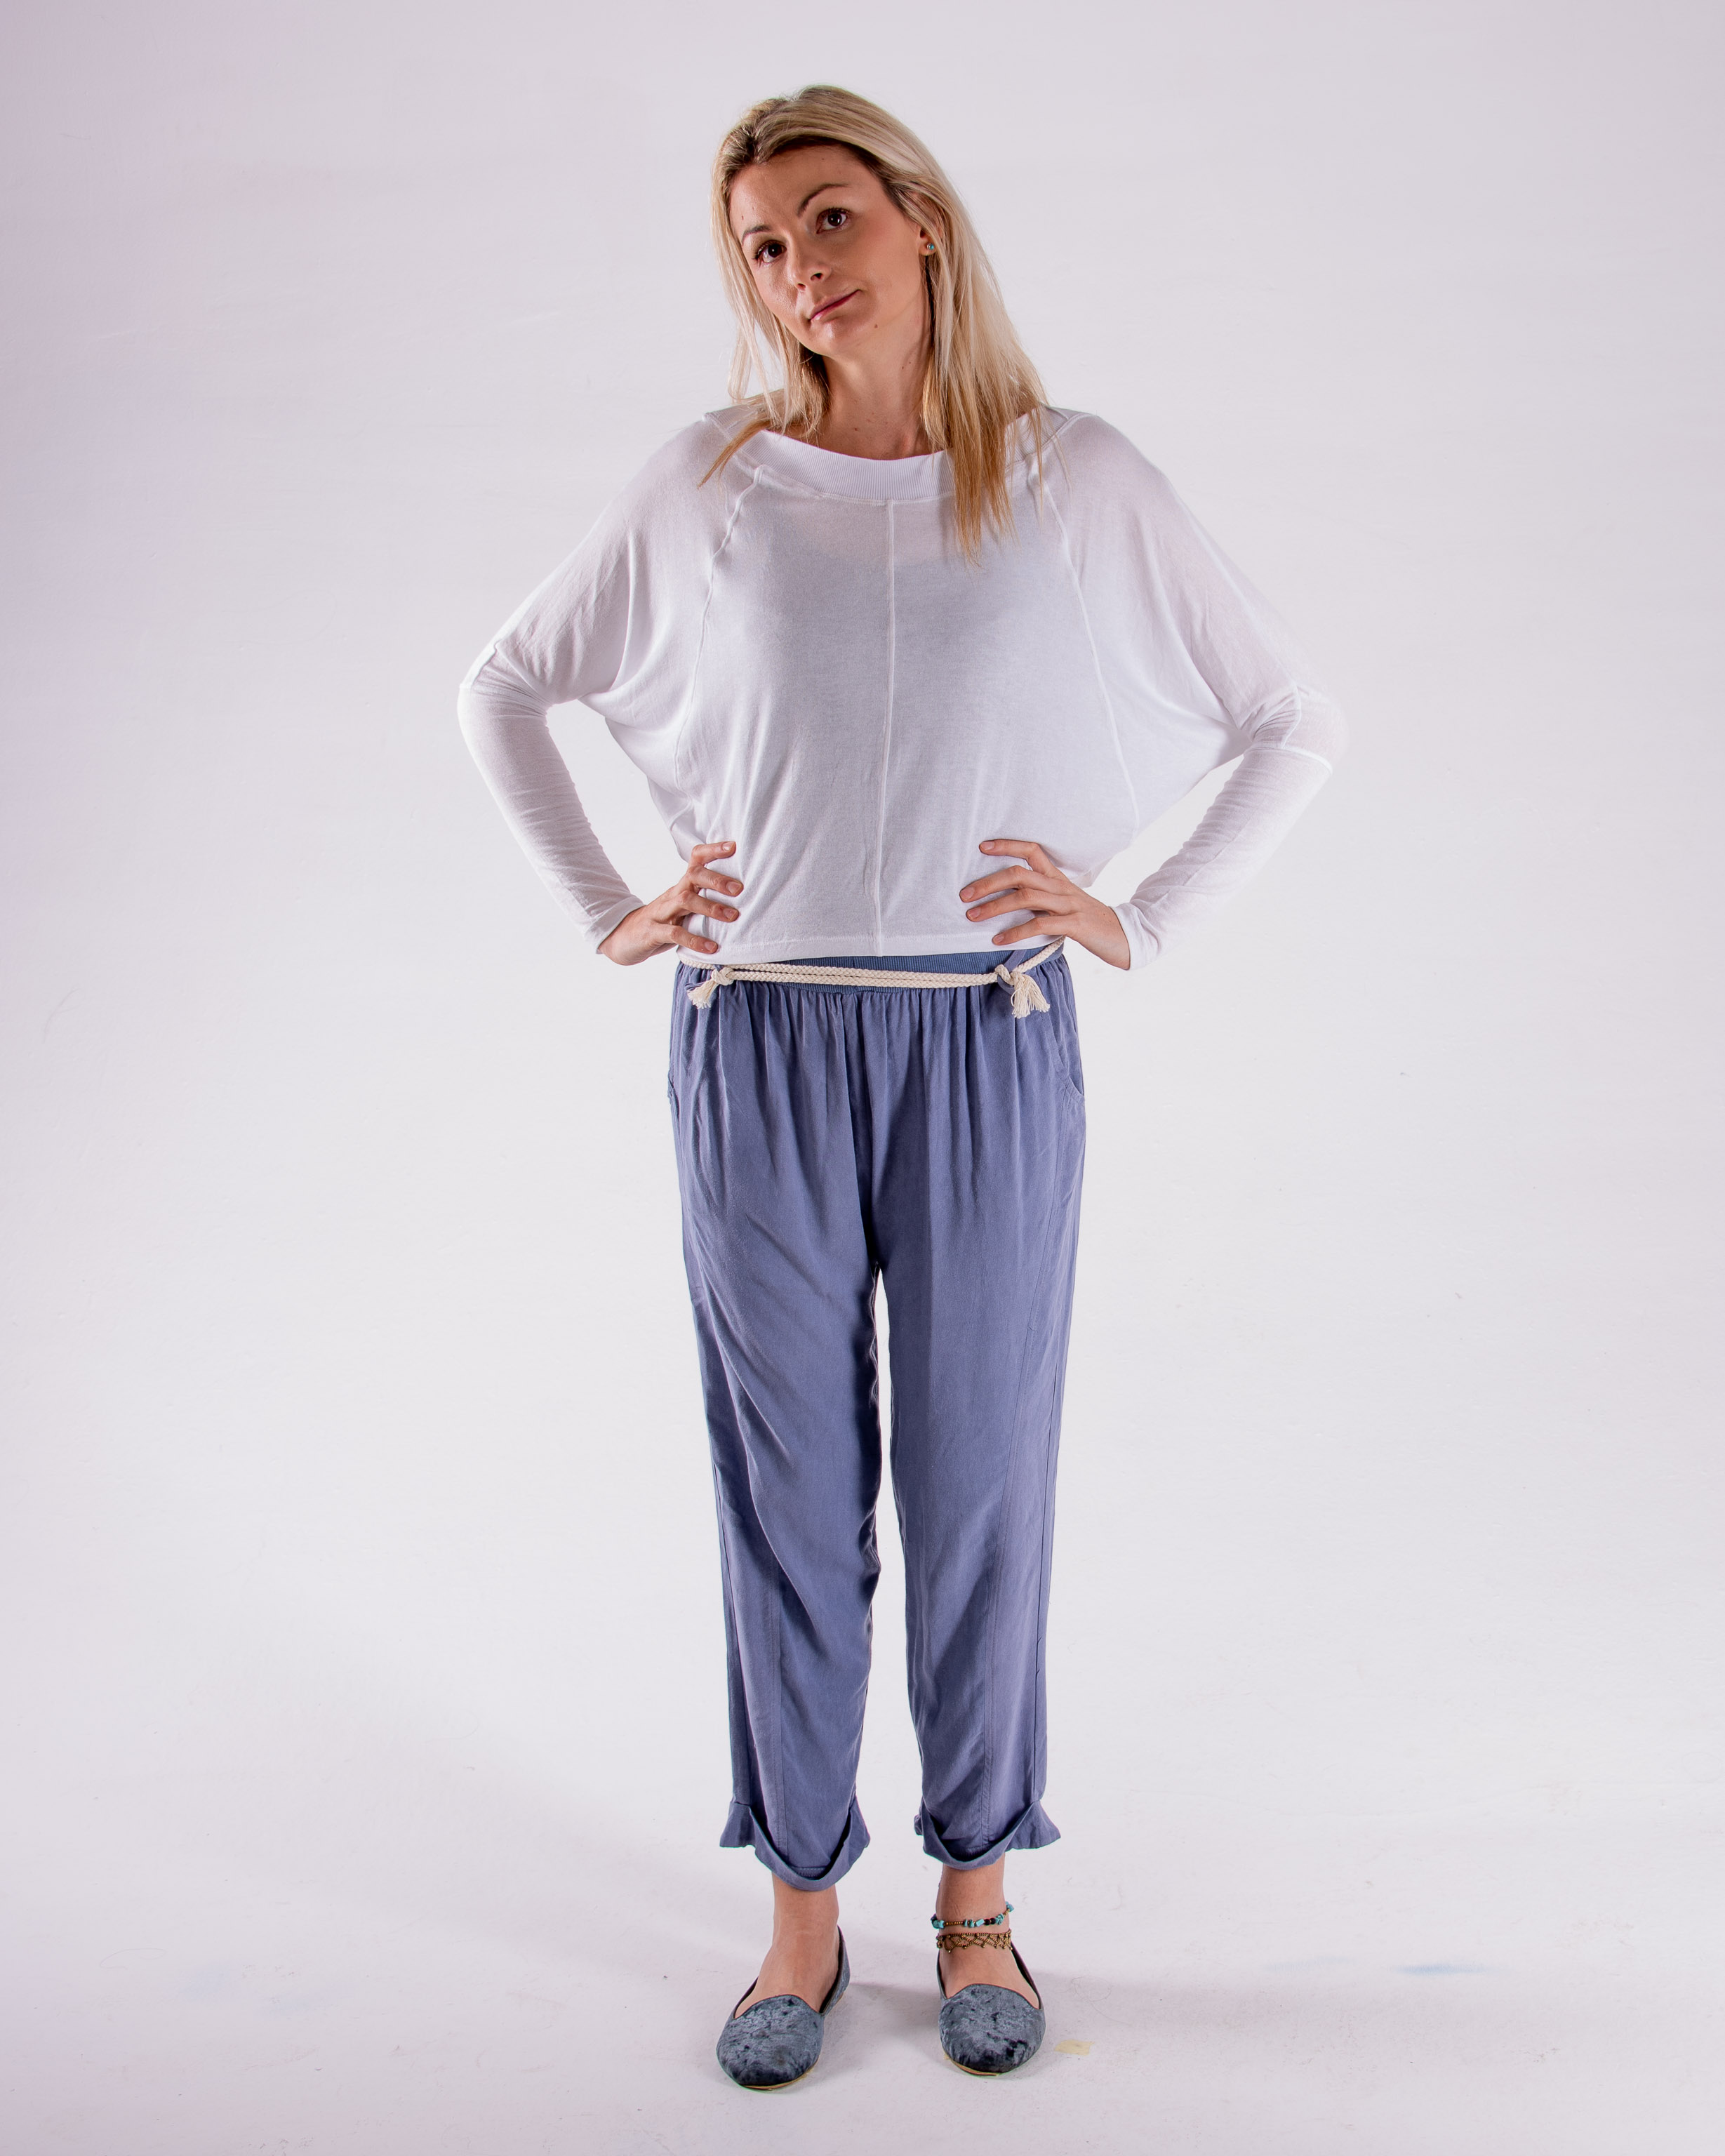 Soft, delicate, One-size pullover. Boat-neck made from cotton ribbing. Can be worn off shoulder.  One size  White